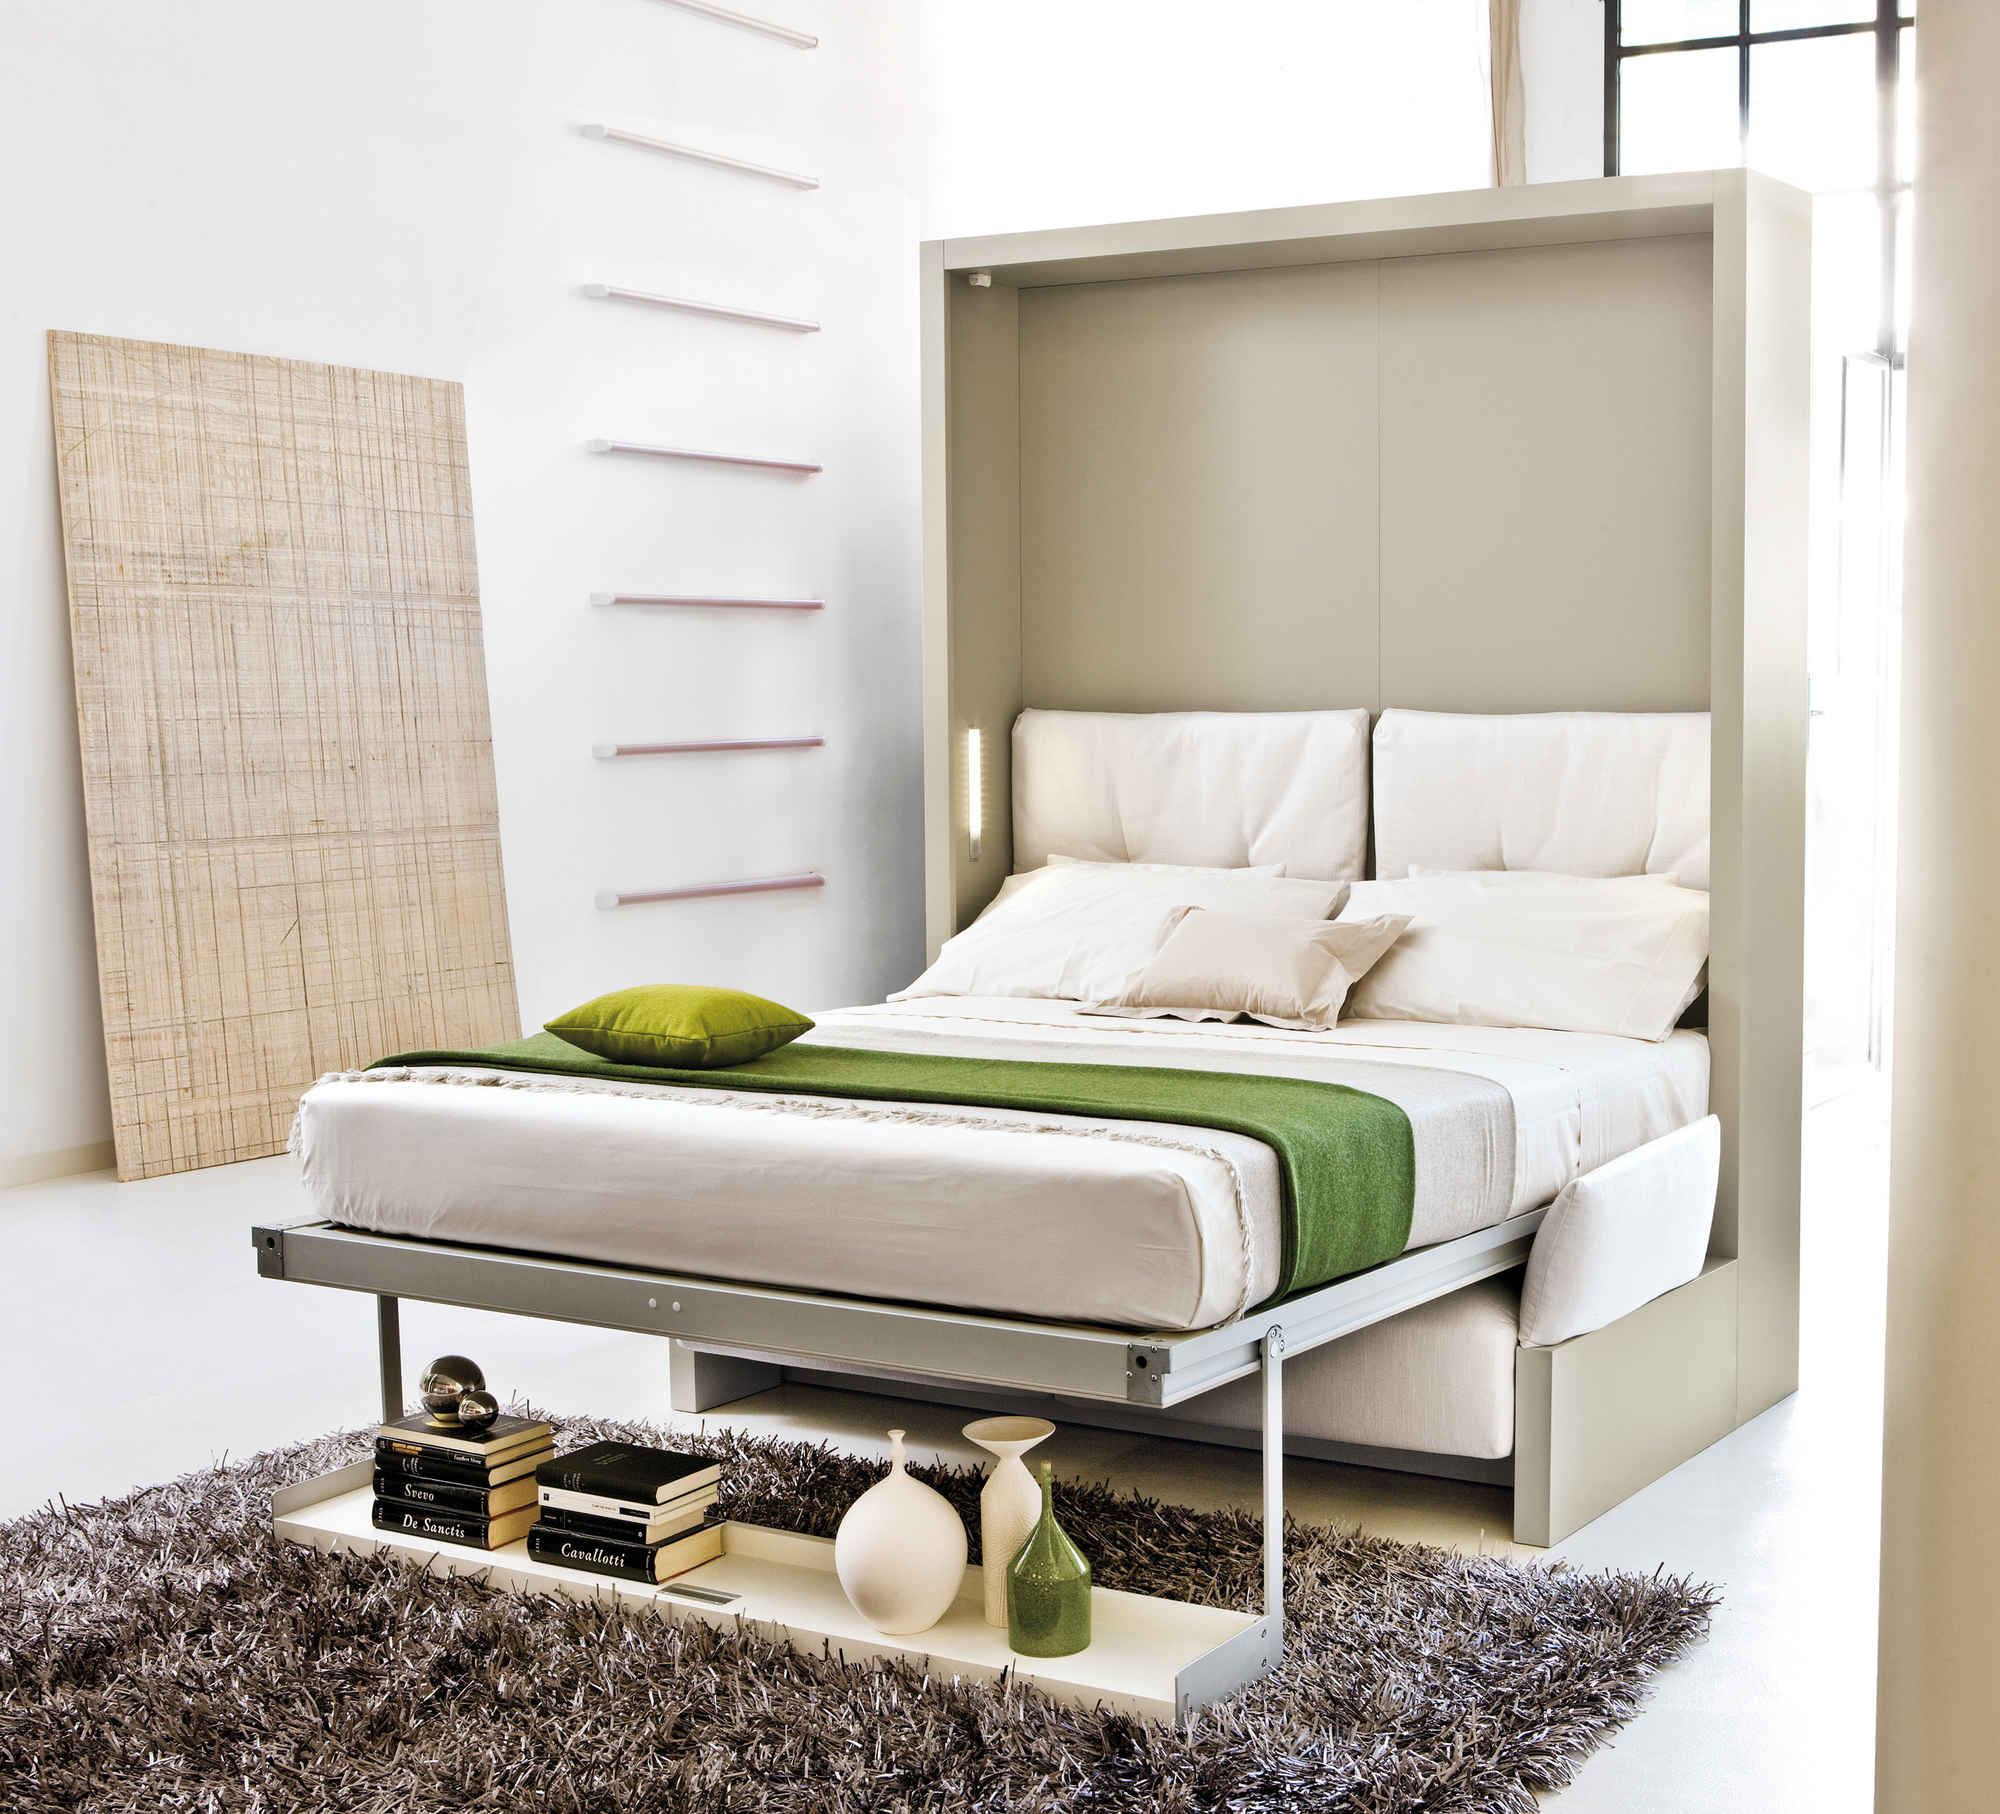 Install Reversible Bed Furniture for Small Spaces with Grey Carpet Rug on White Tile Flooring